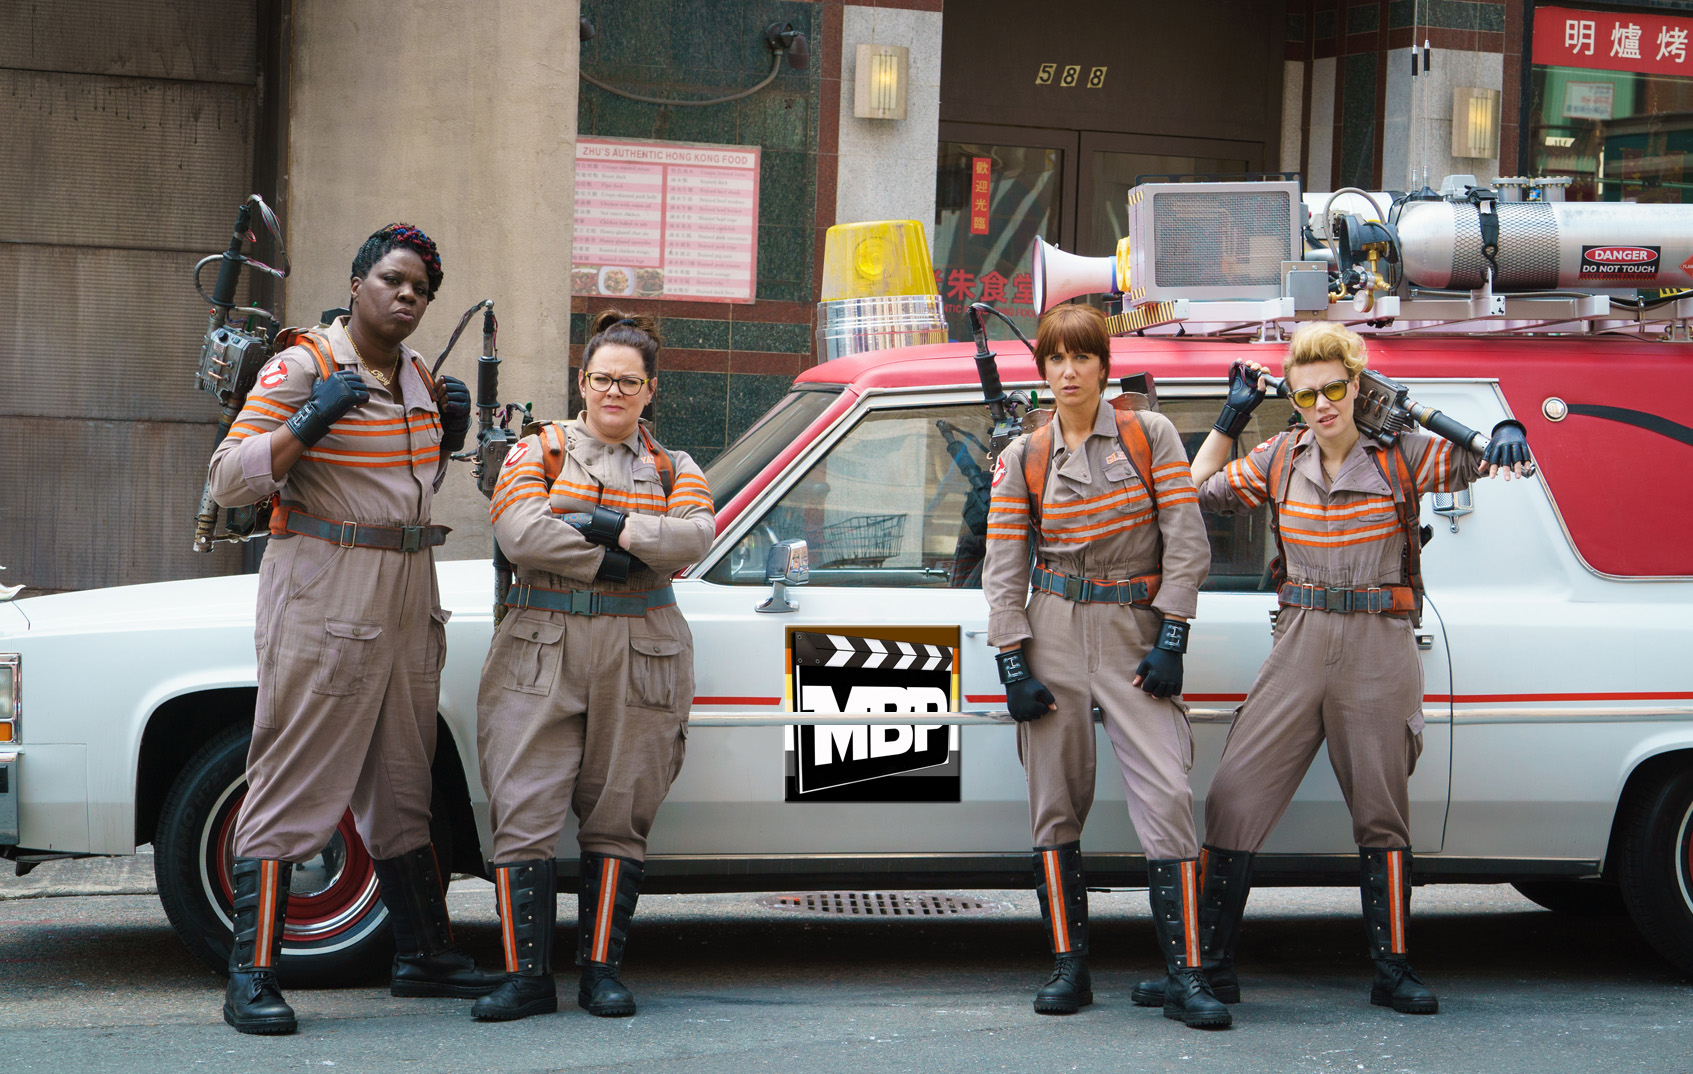 MBP e192 - 'Ghostbusters' (7/21/16)    There's been a LOT of buzz about the new 'Ghostbusters' film. Should this remake have been made? And how does this cast stack up? Tune in to find out! Click through to listen.